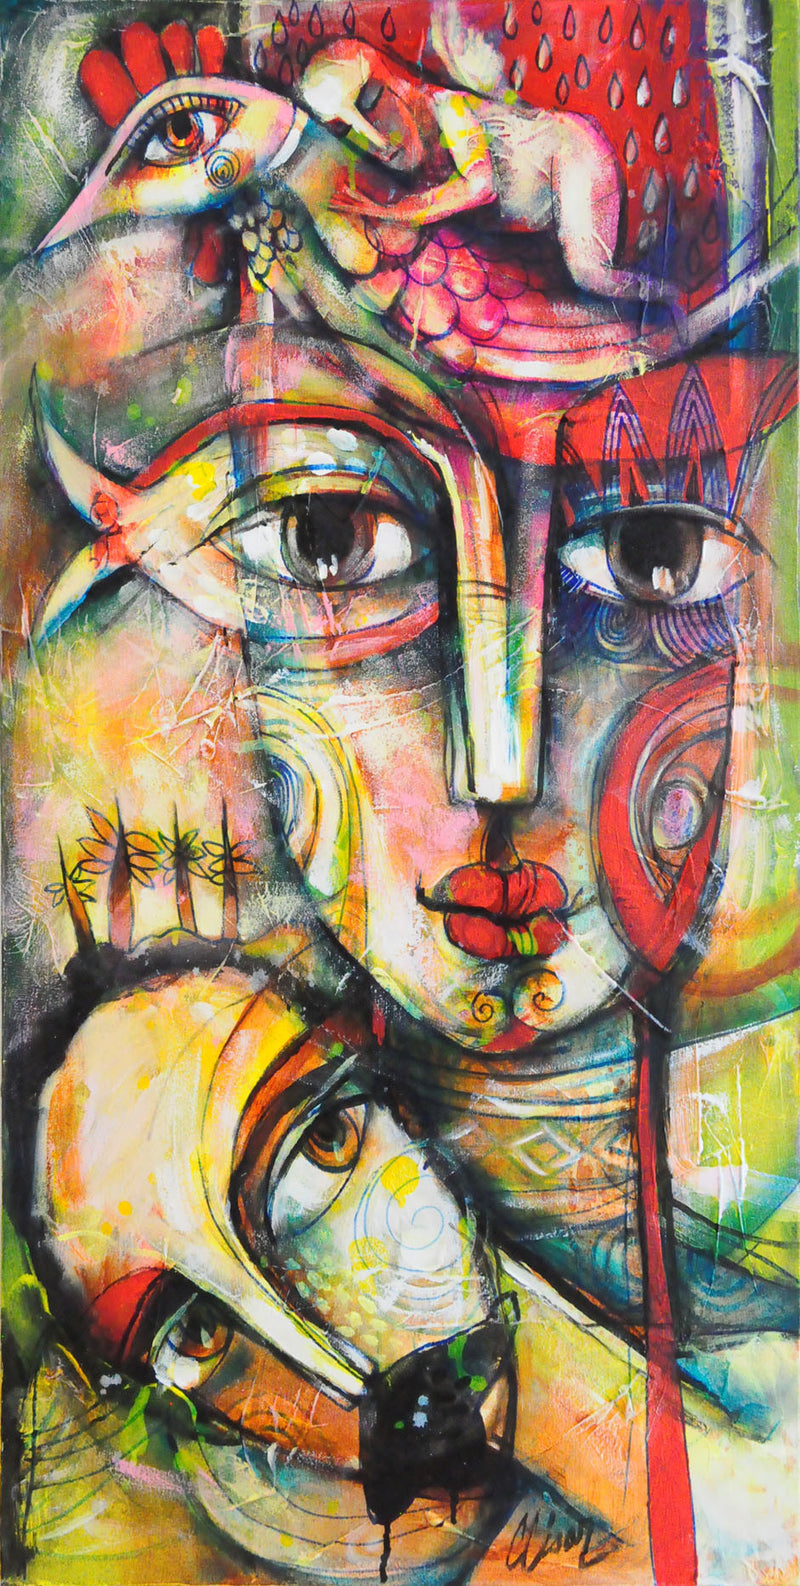 Recuerdos Compartidos Carlos Cesar Original Cuban Art for sale Arte Cubano